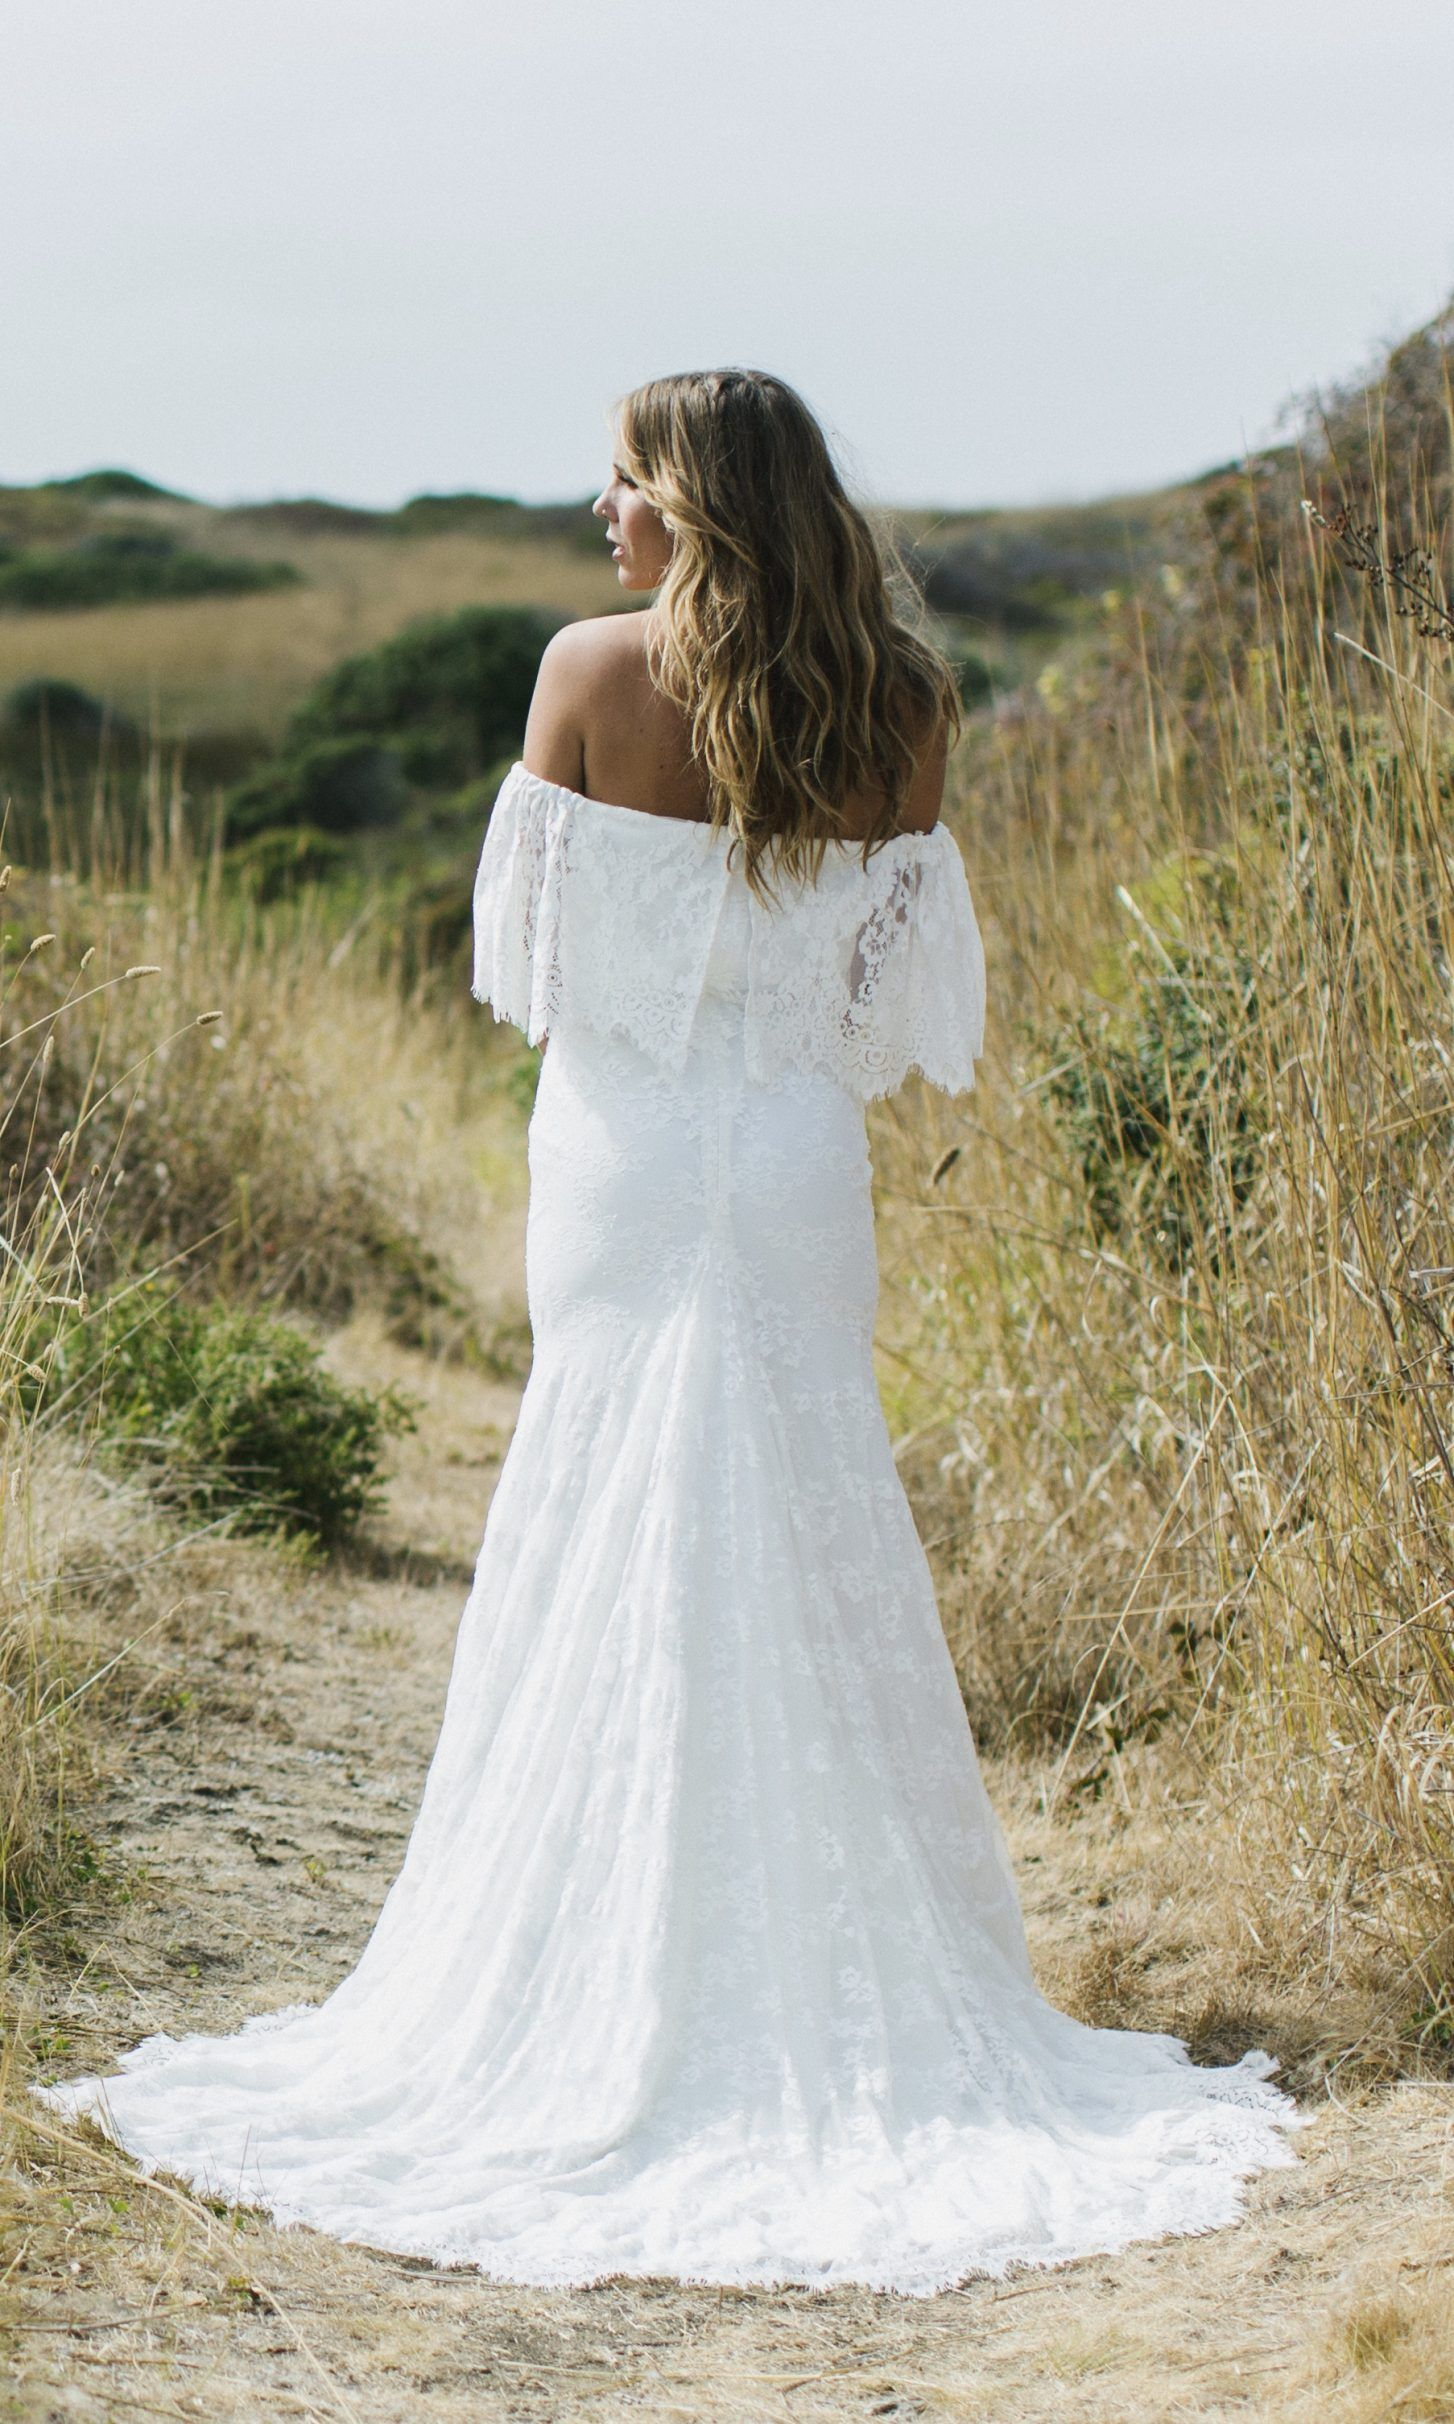 Short casual wedding dresses wedding dress wedding and wedding